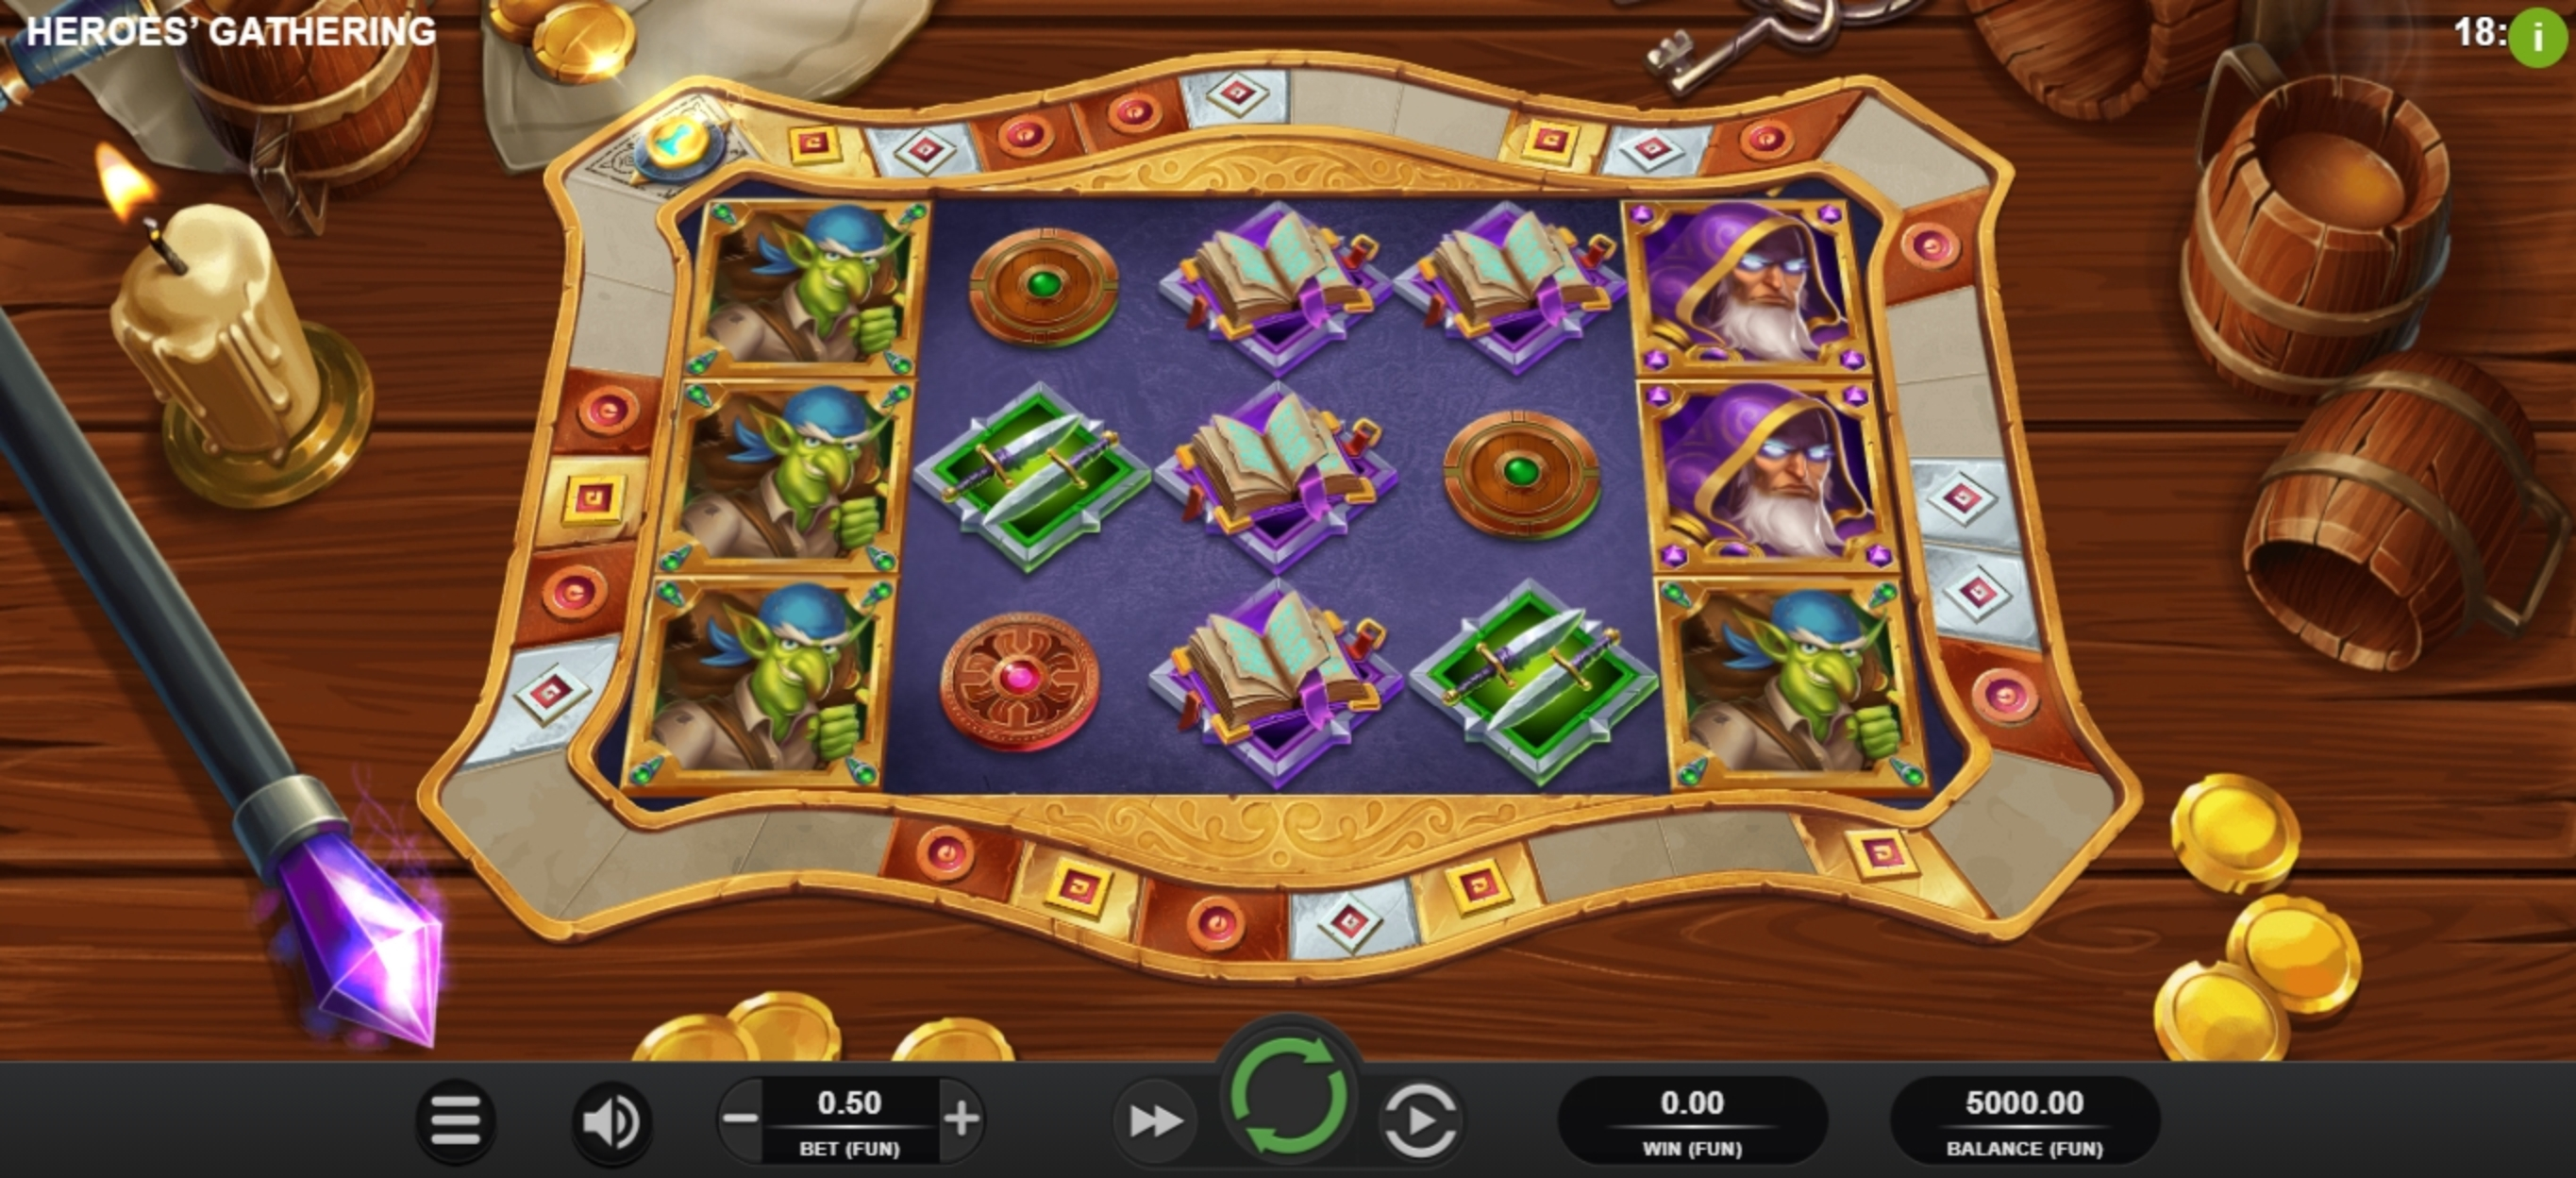 Reels in Heroes Gathering Slot Game by Relax Gaming